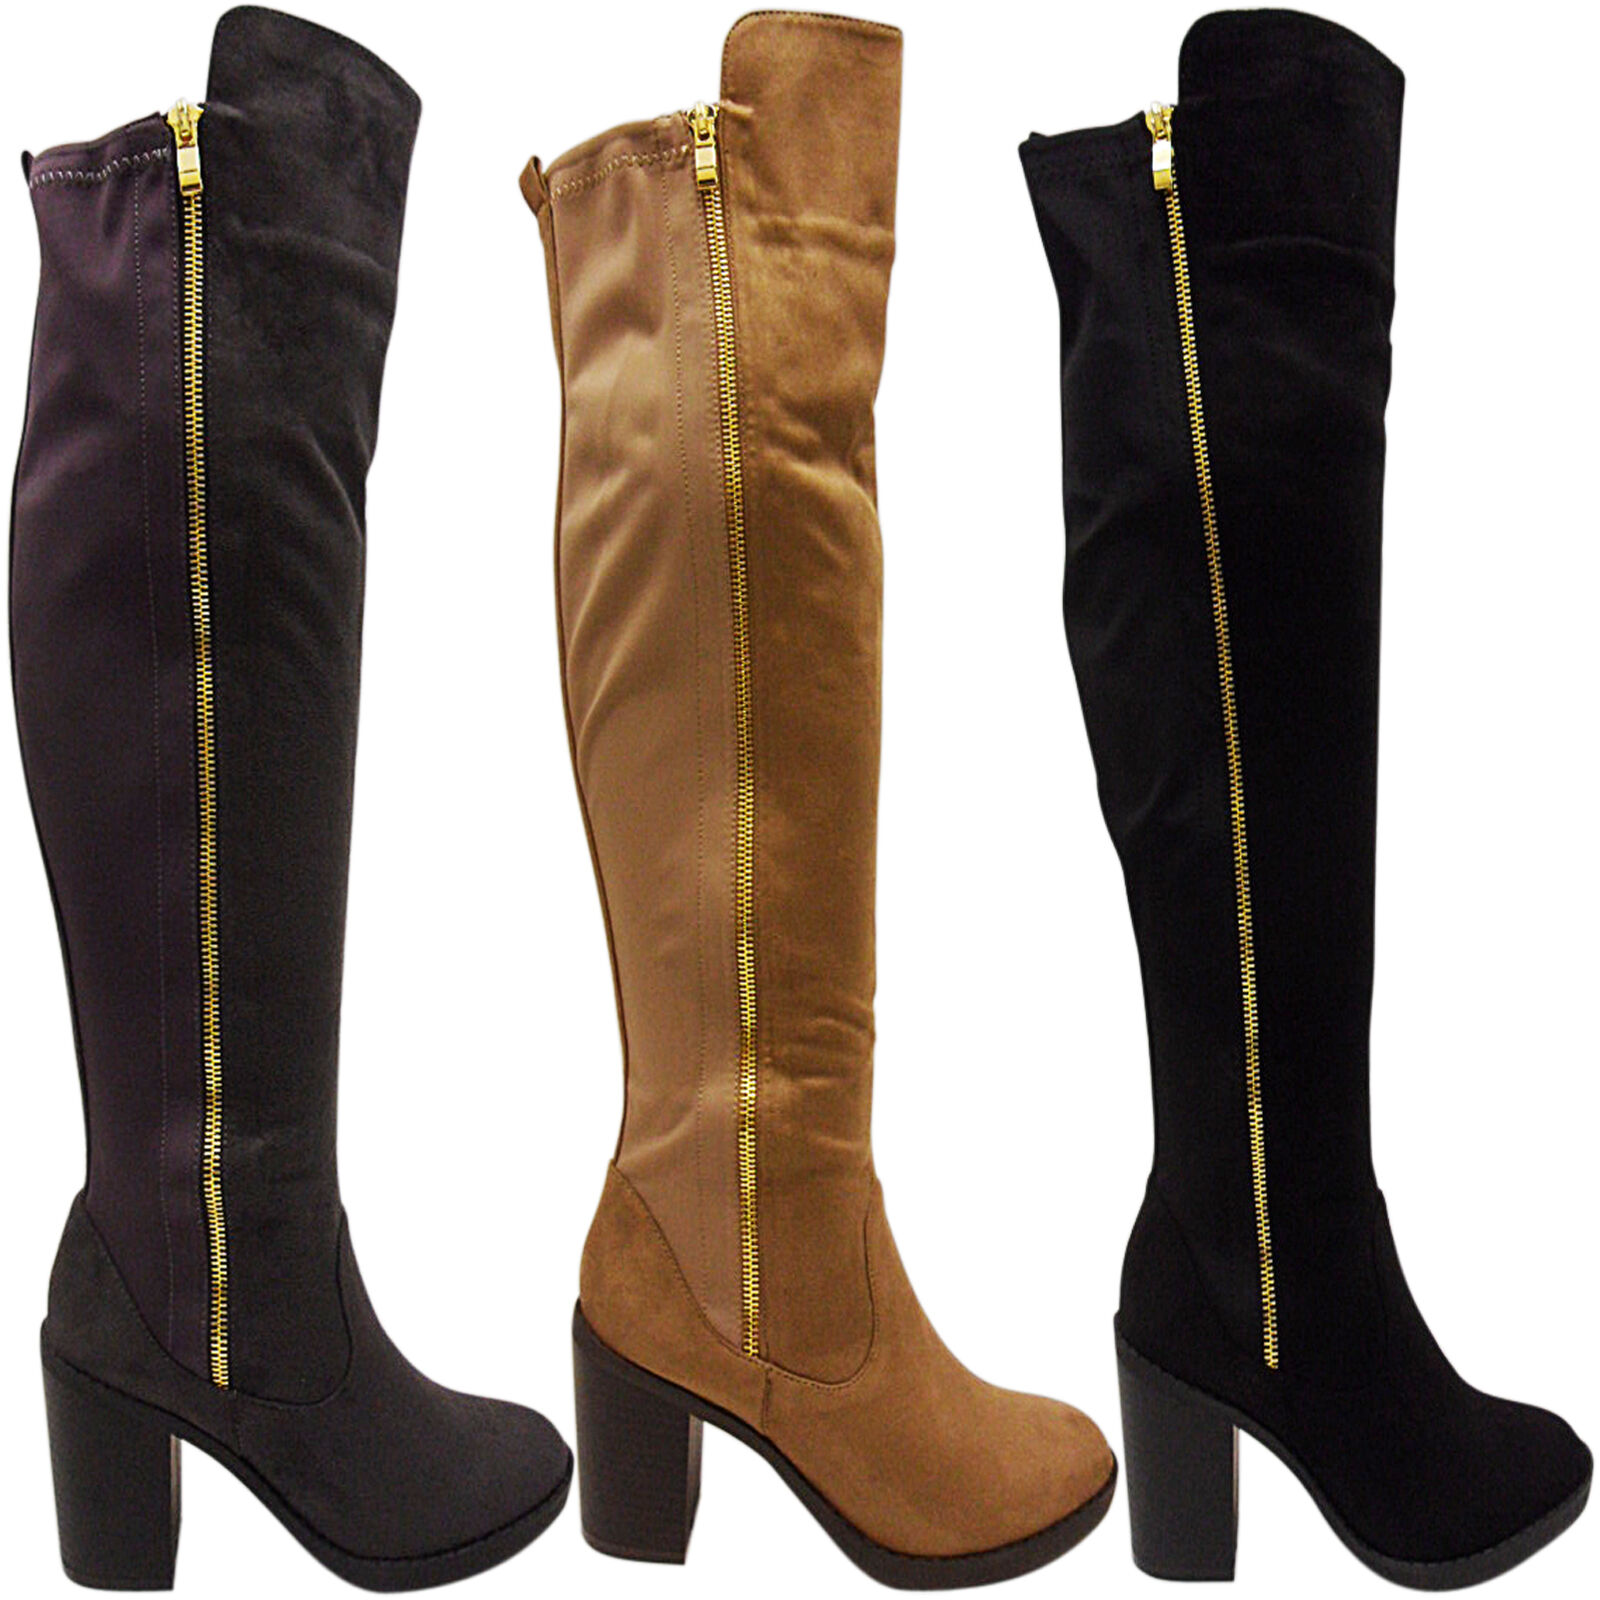 WOMENS LADIES OVER THE KNEE THIGH HIGH CHUNKY MID BLOCK HEEL BOOTS ELASTIC SIZE